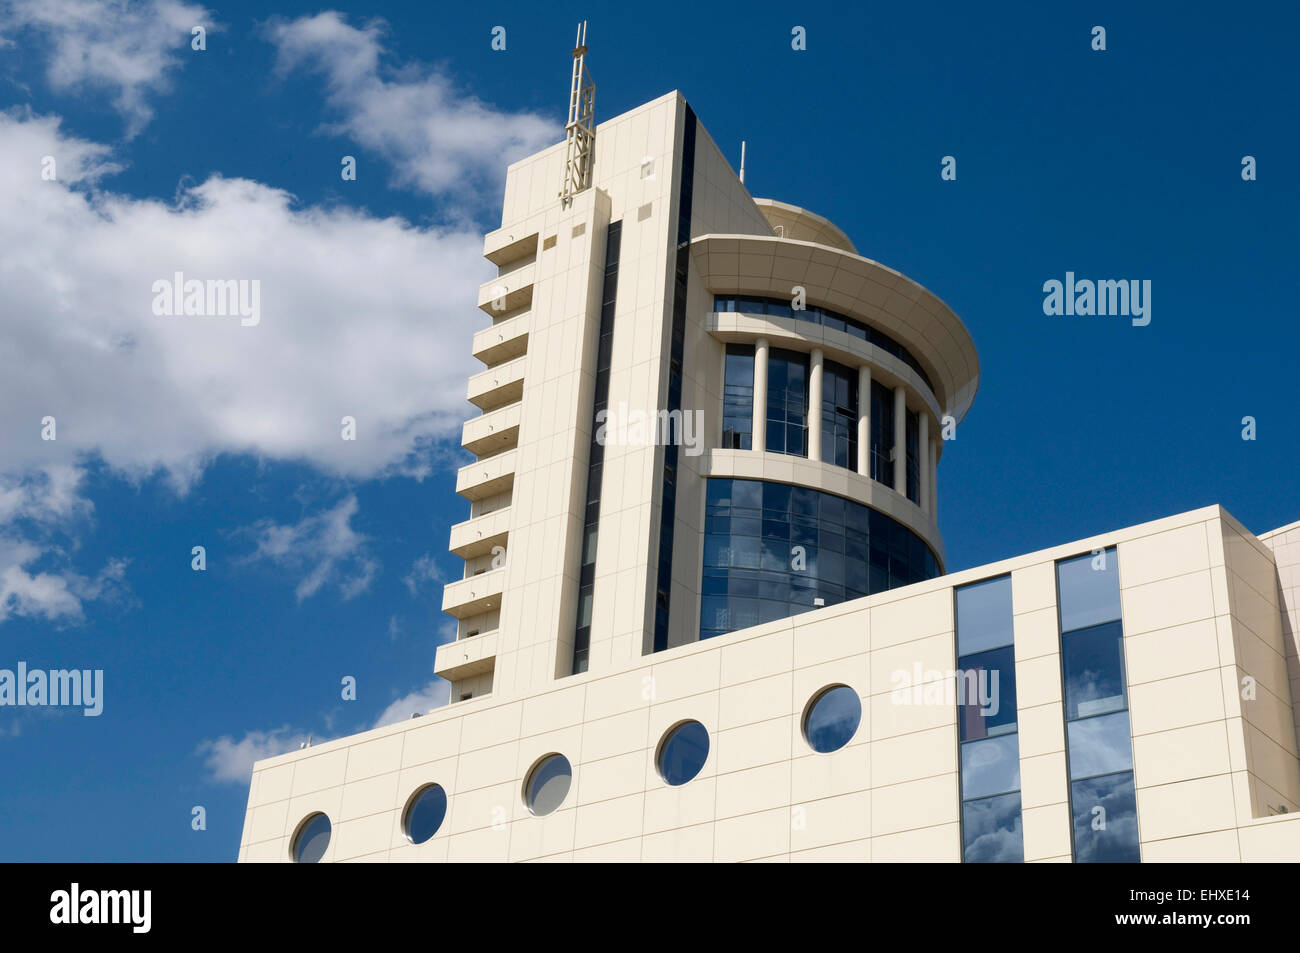 White modern building is situated against the blue sky background. Clouds and sky are reflected in the windows. Stock Photo